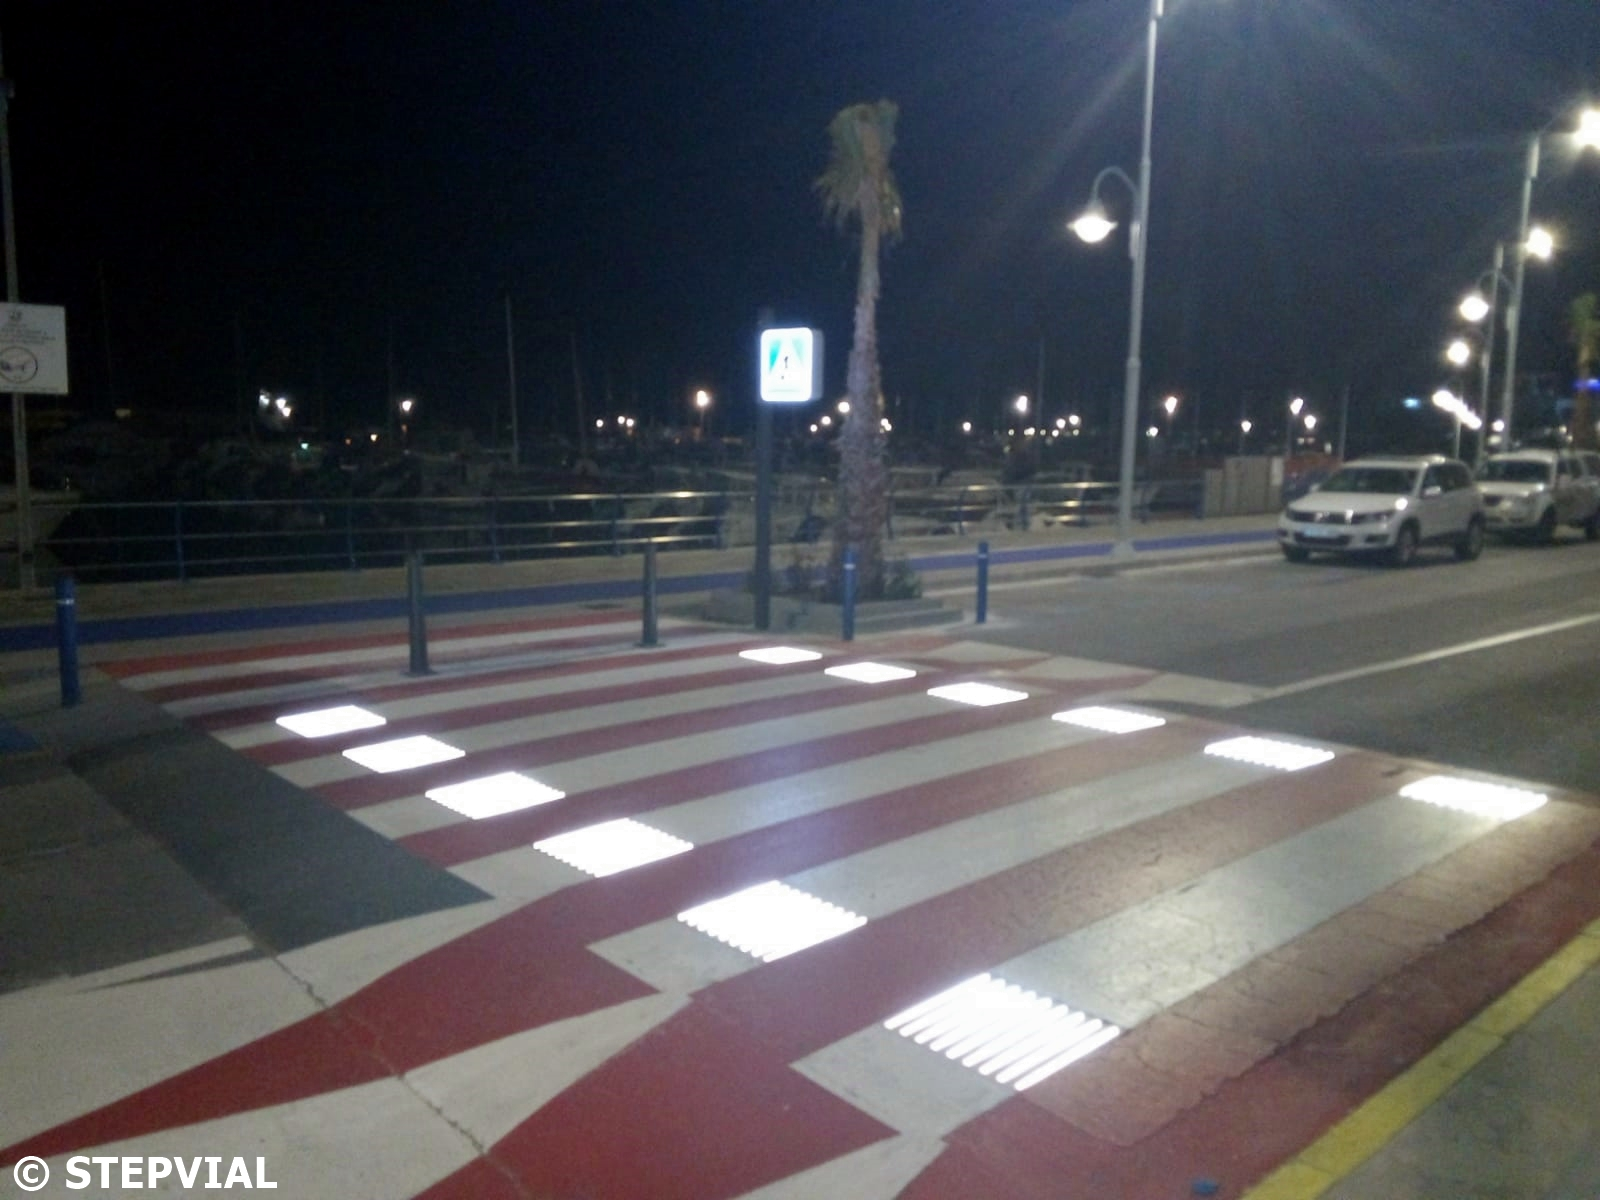 Smart Pedestrian Crossing in the Port de L'Ampolla